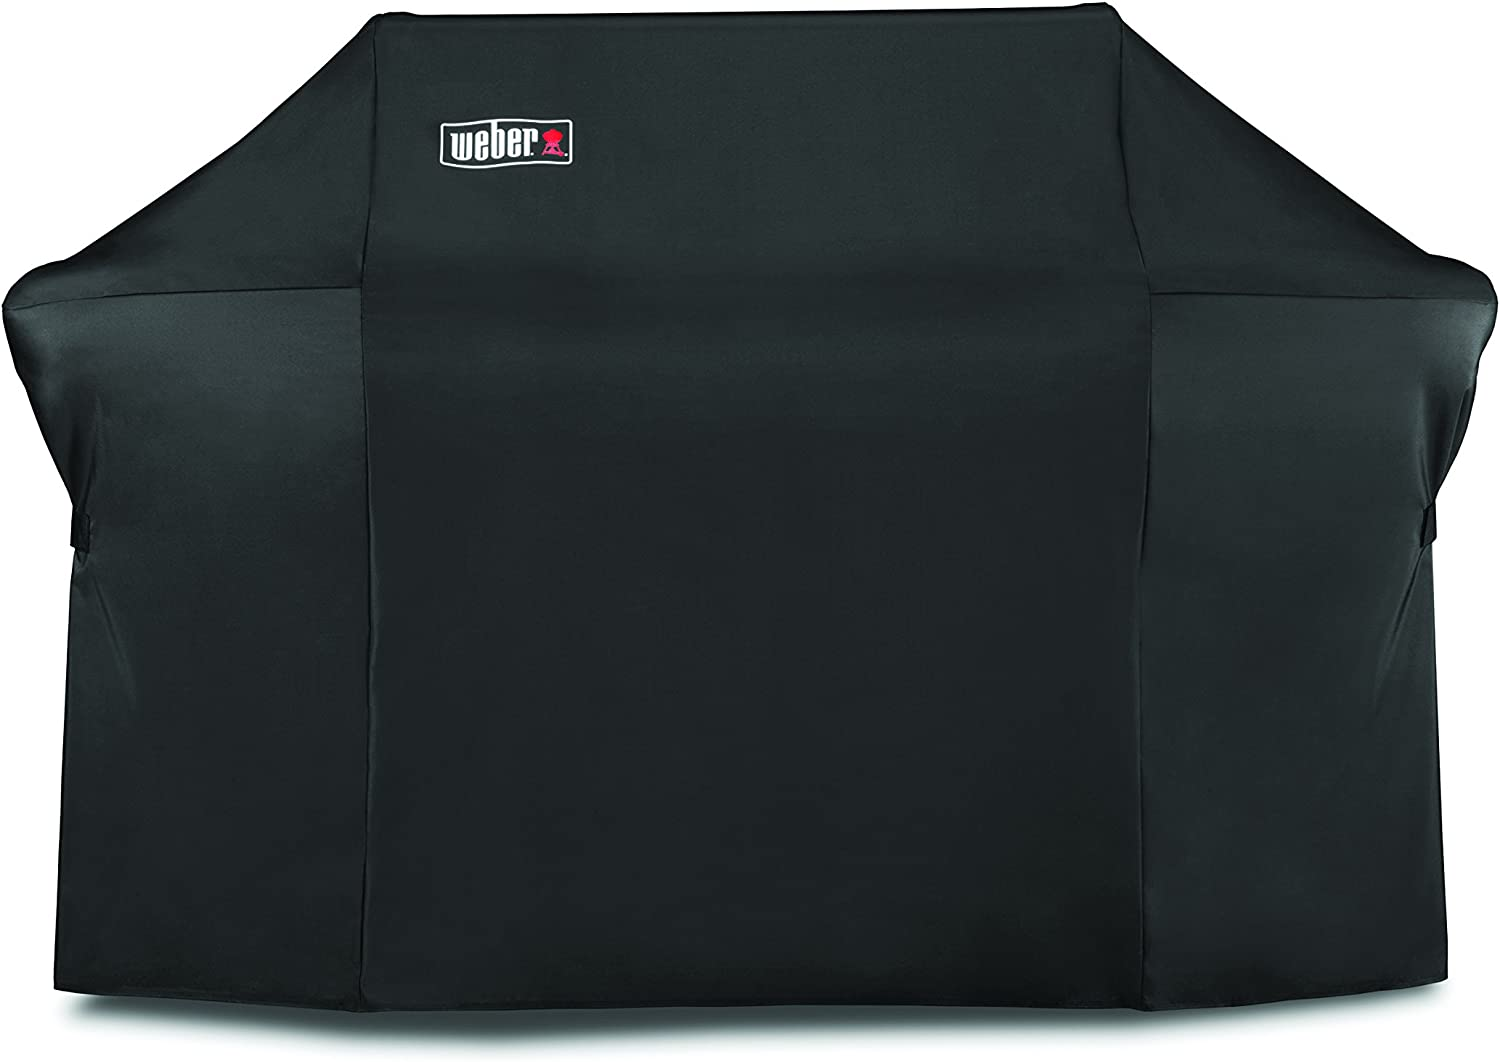 Weber 7109 Grill Cover with Storage Bag for Summit 600-Series Gas Grills